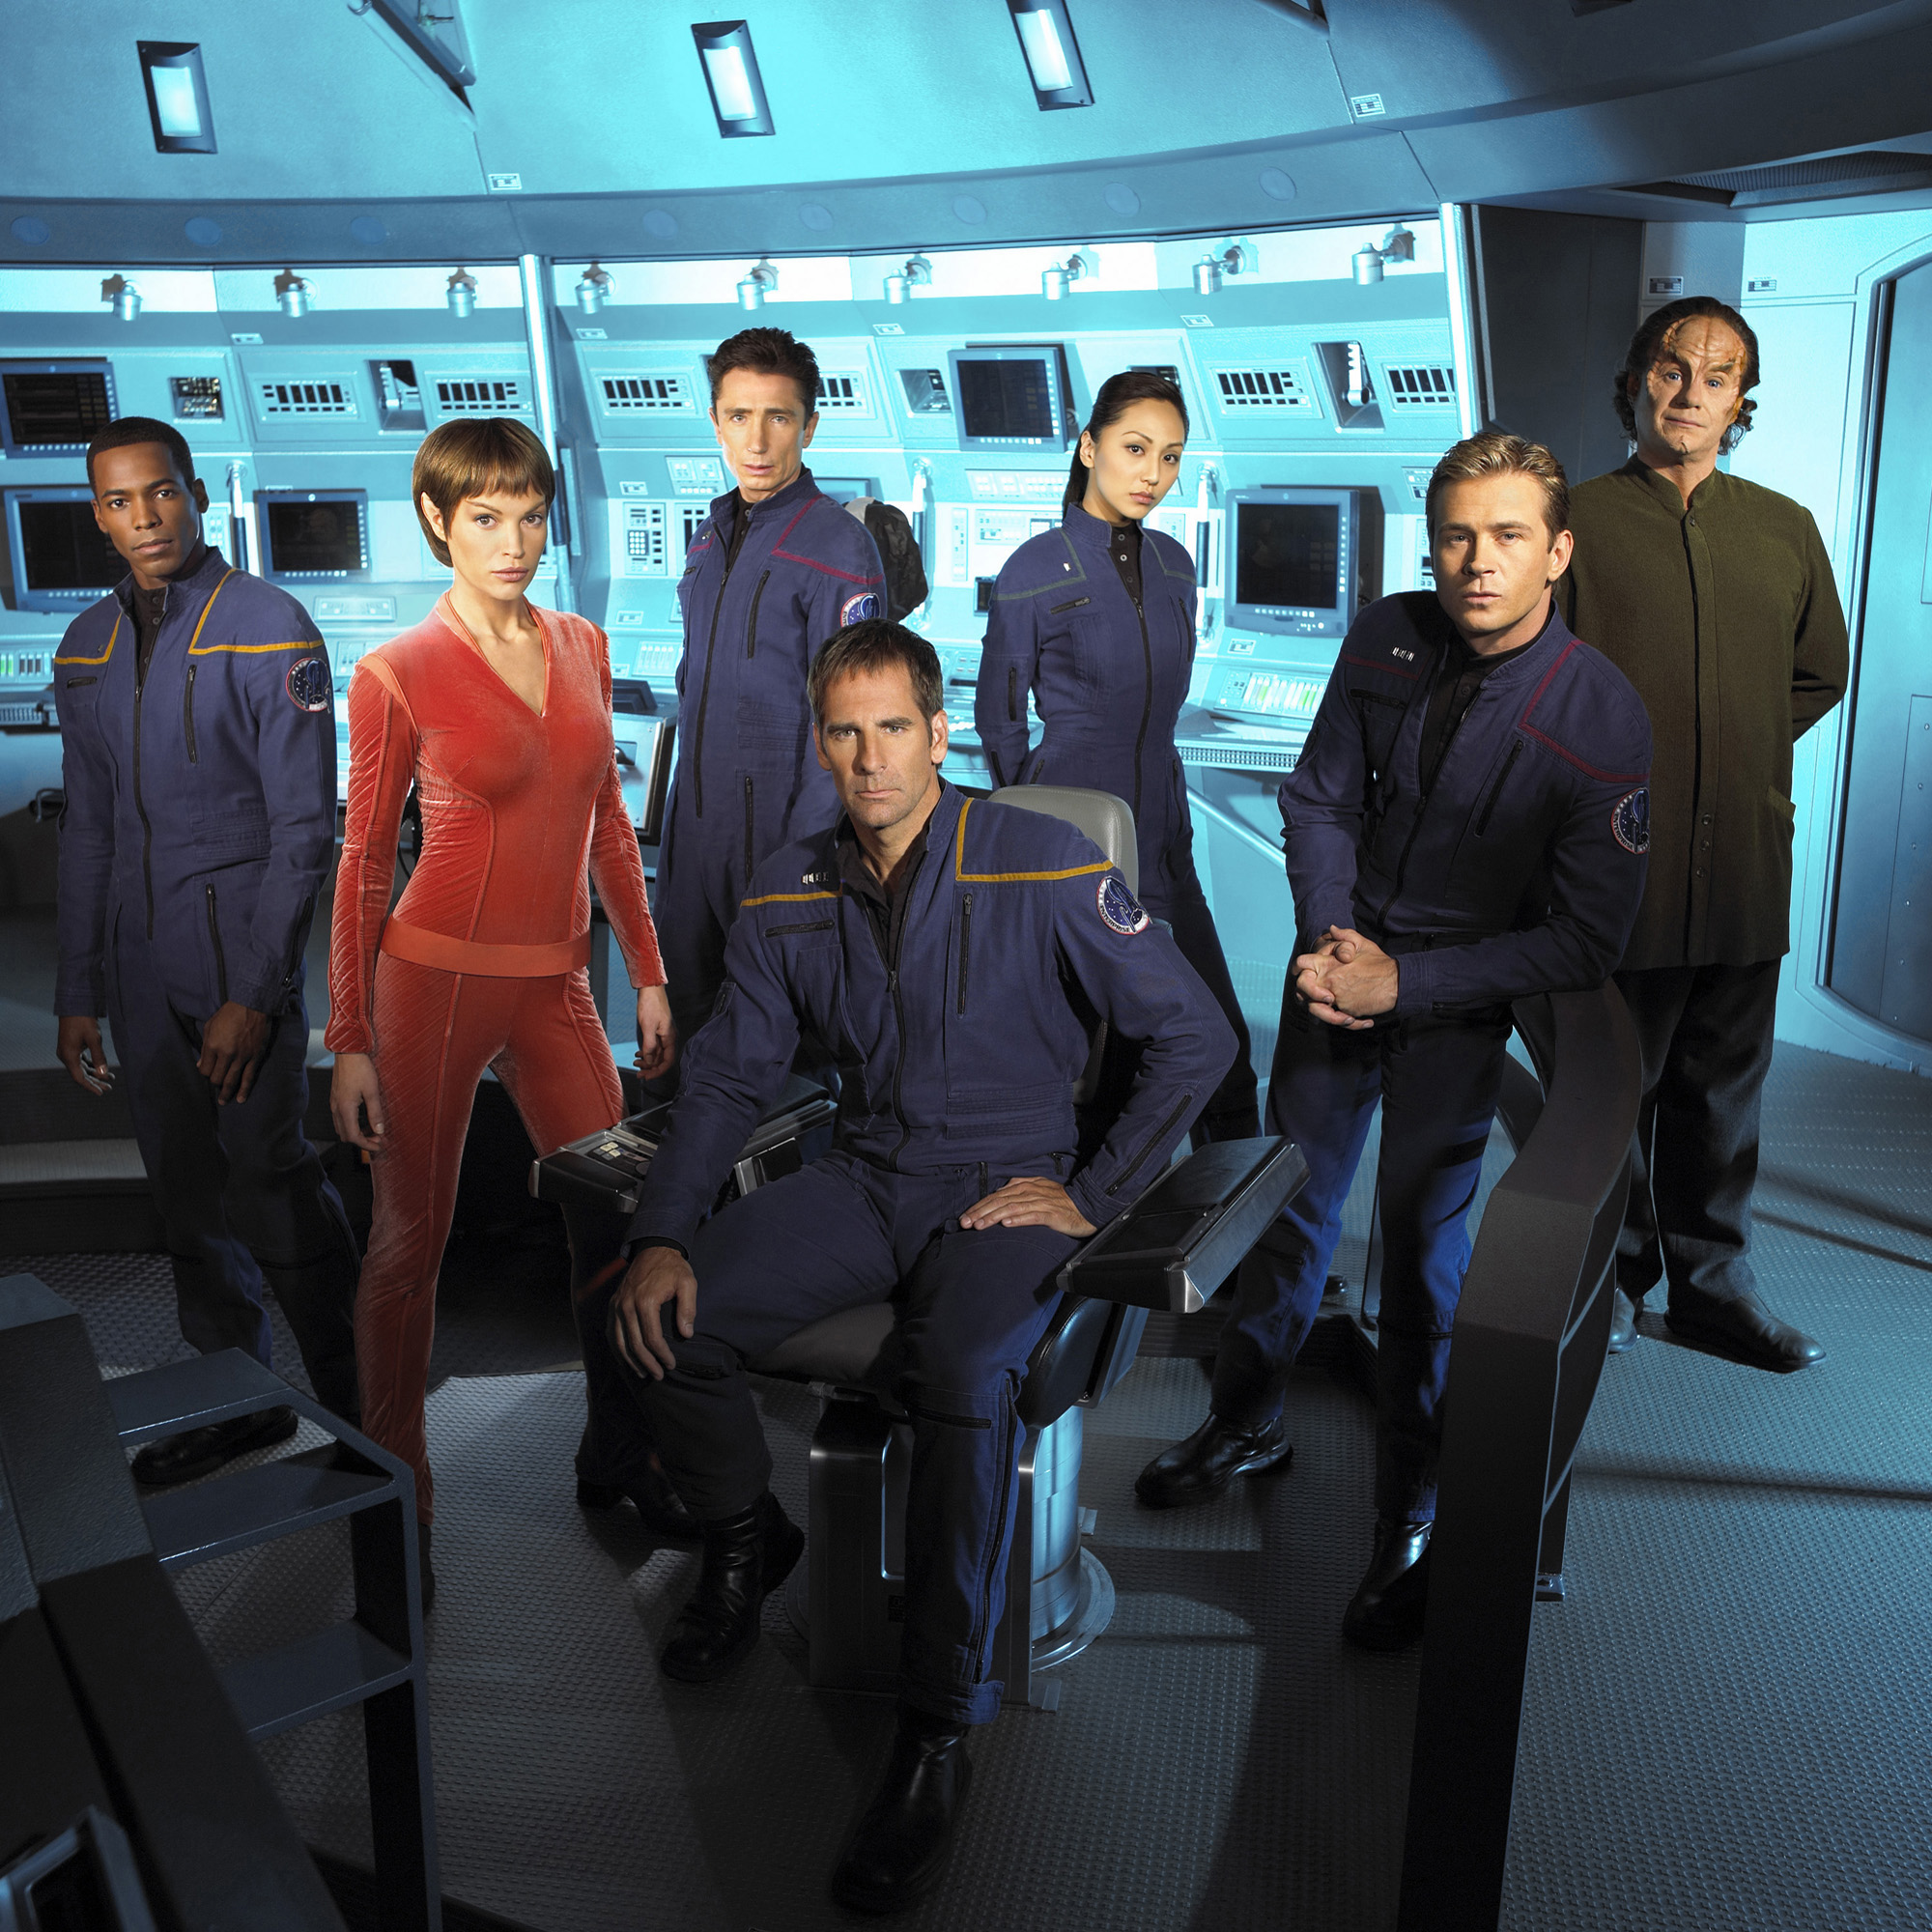 Promotional portrait of the cast of the UPN television series, 'Star Trek: Enterprise,' in costume and on set, 2003. L-R: Anthony Montgomery, Jolene Blalock, Dominic Keating, Scott Bakula, Linda Park, Connor Trinneer and John Billingsley. (Photo by James Sorenson/CBS Photo Archive/Getty Images)